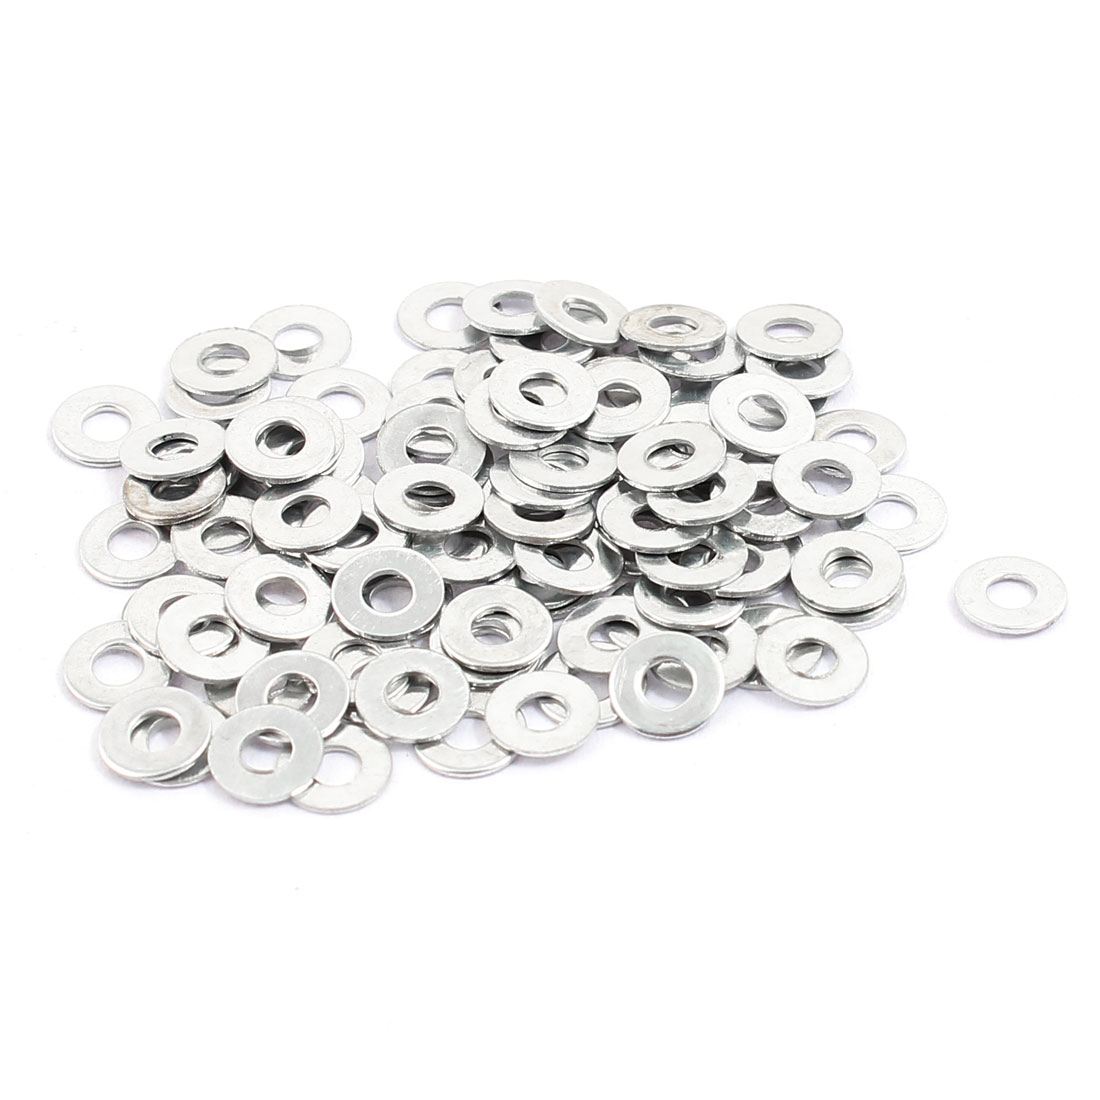 100pcs 5x2mm Stainless Steel Flat Washer Fastener Plain Spacer Gasket for Screw Bolt